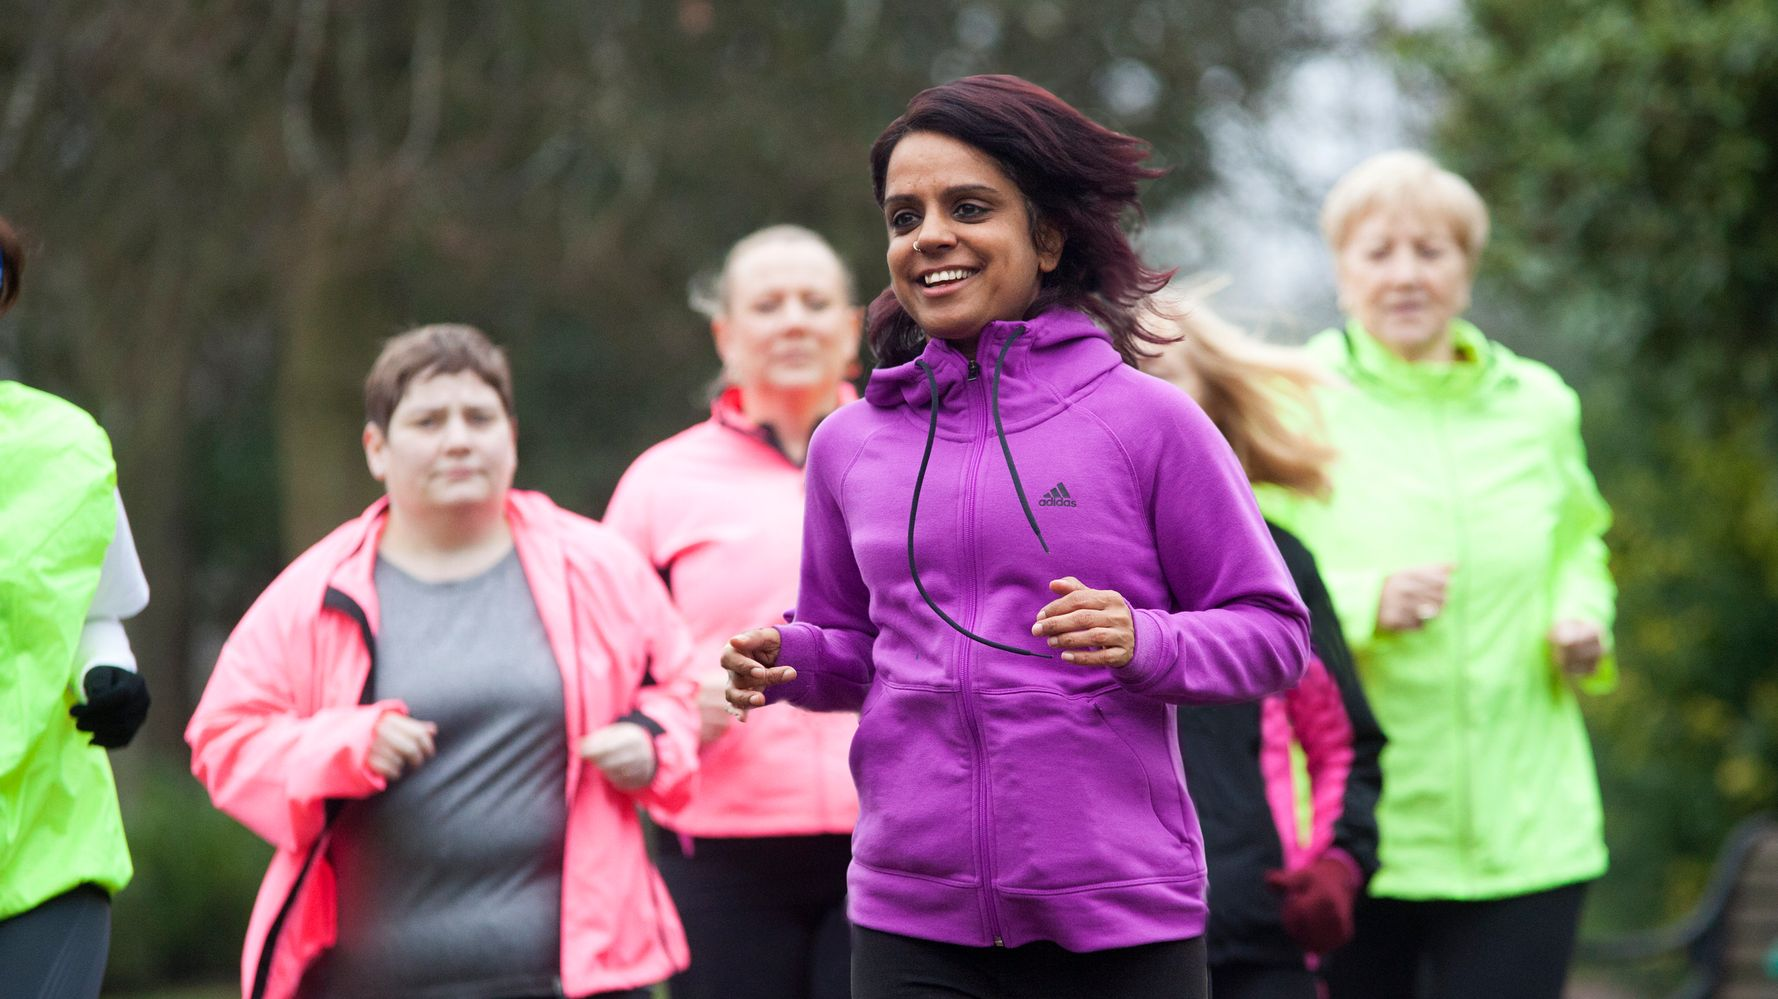 Millions Of People With Mental Health Issues Could Be Helped By This Fitness Scheme